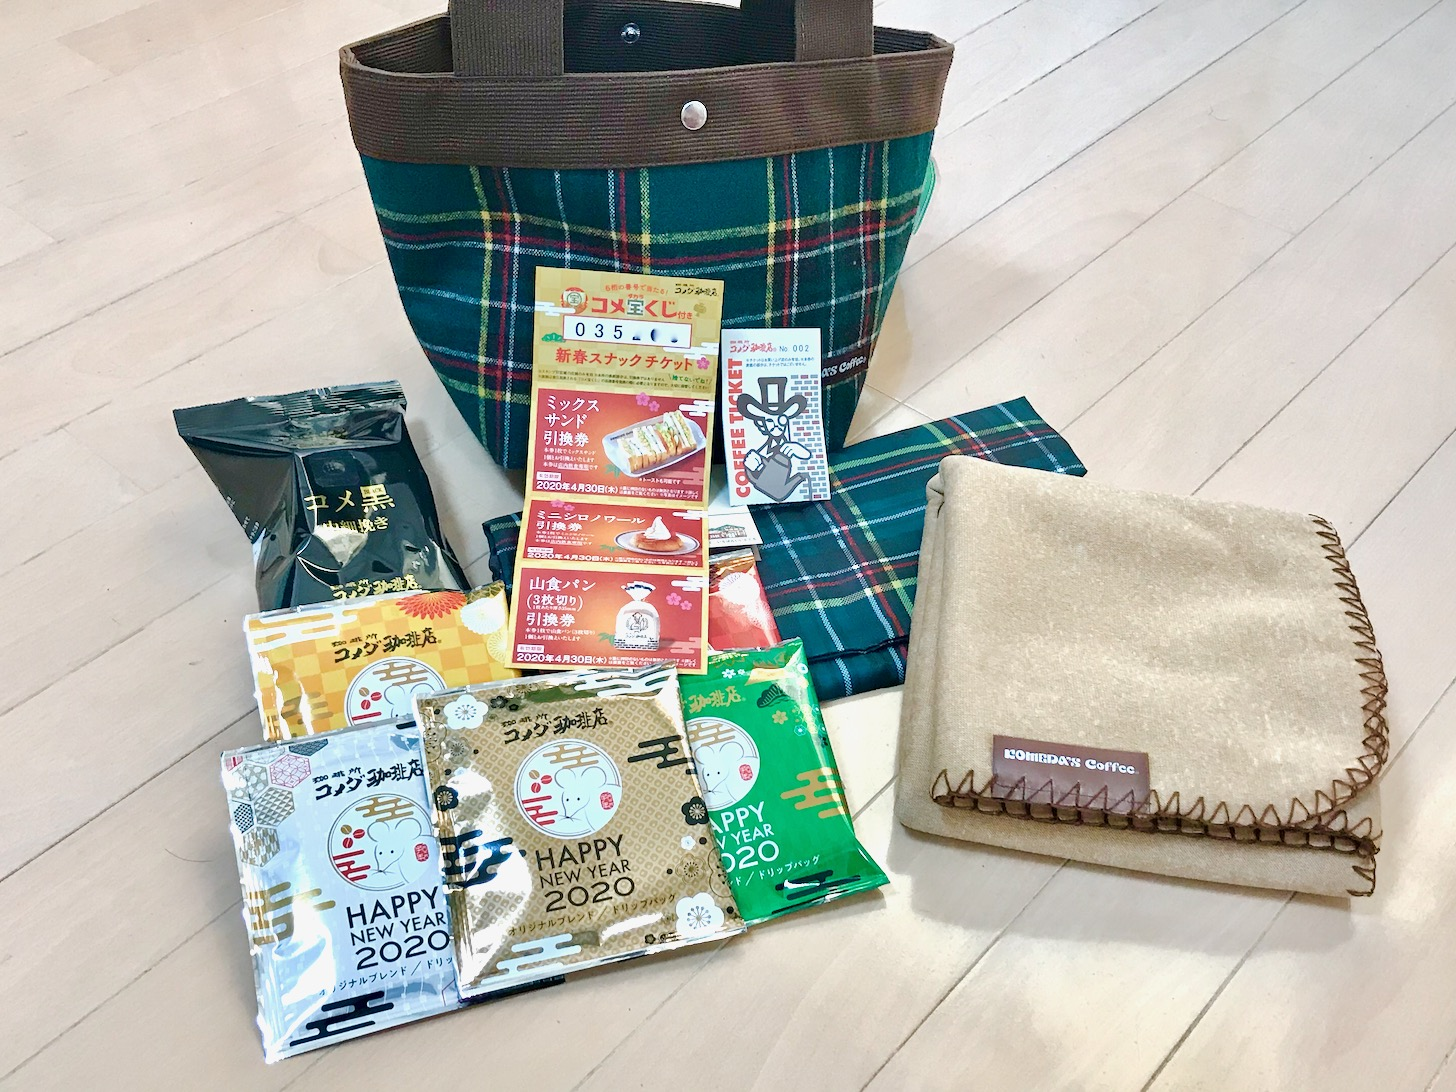 With rice lottery Komeda's lucky bag 2020 5000 yen